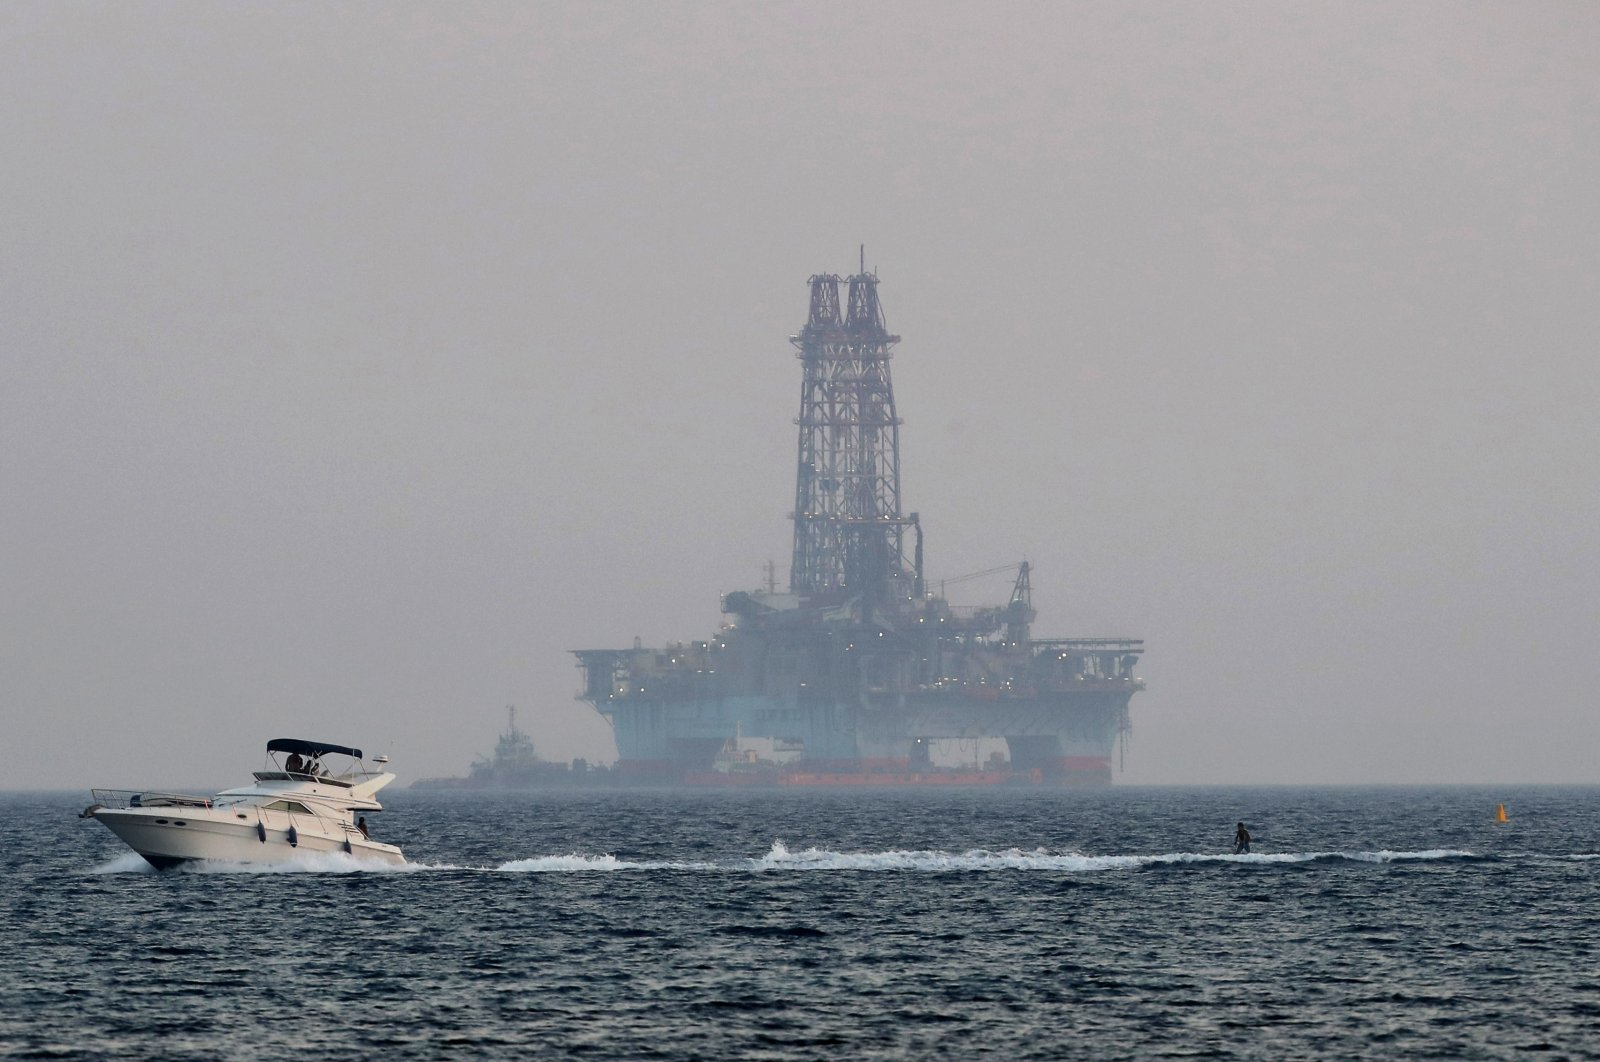 An offshore drilling rig is seen as a boat passes with a skier, in the waters of the Eastern Mediterranean, July 5, 2020. (AP Photo)